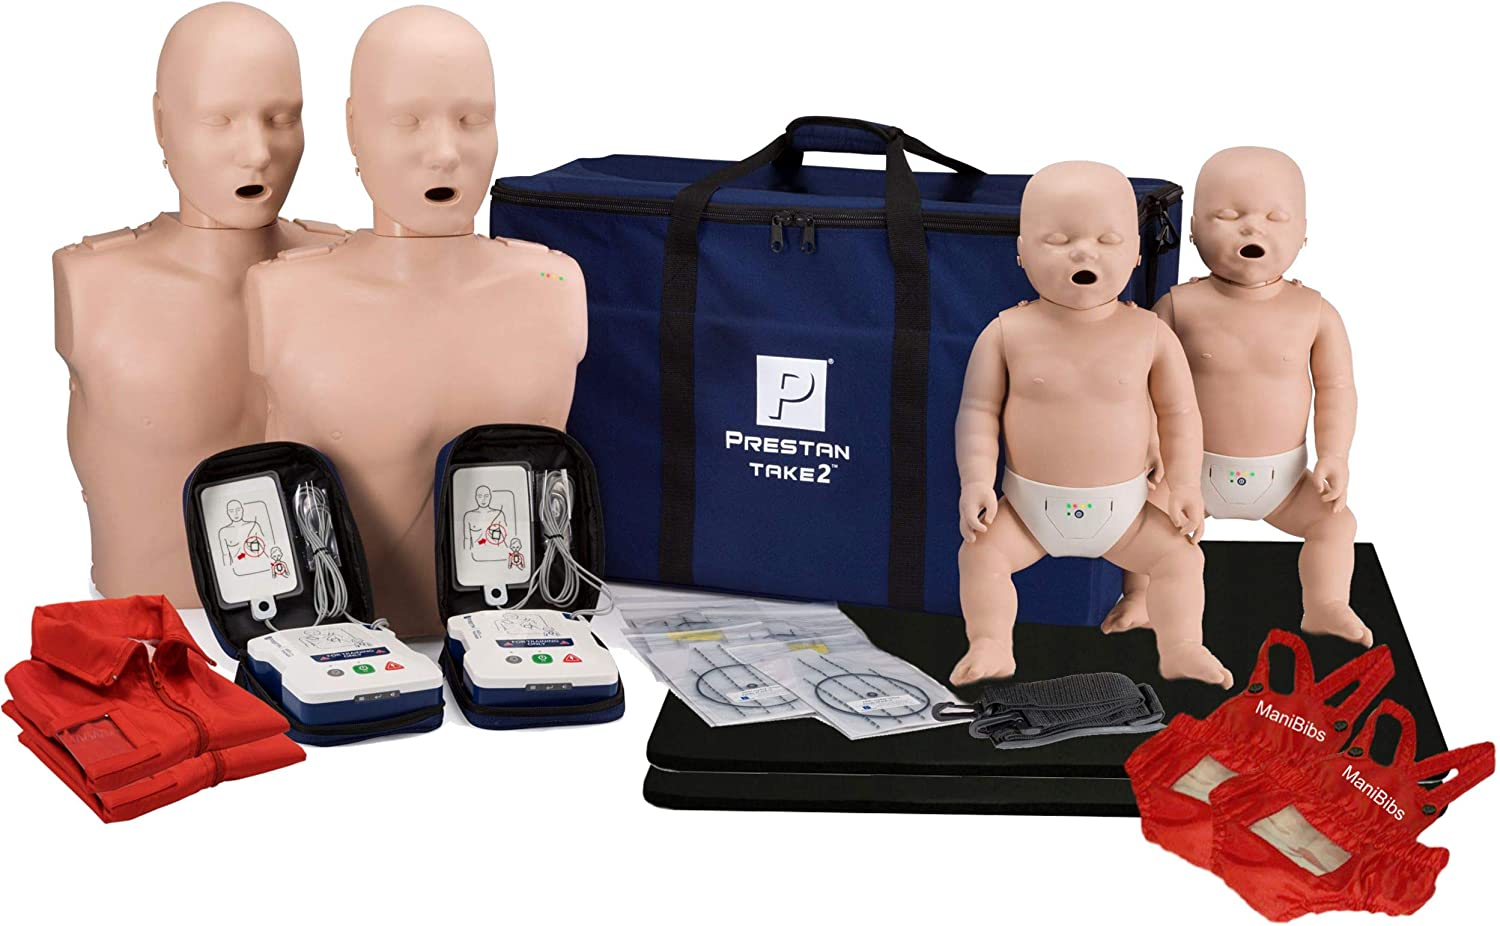 Prestan Take2 CPR Manikin & UltraTrainer Kit with Feedback (2-Adult, 2-Infant, & 2-UltraTrainers) and MCR Medical Accessories